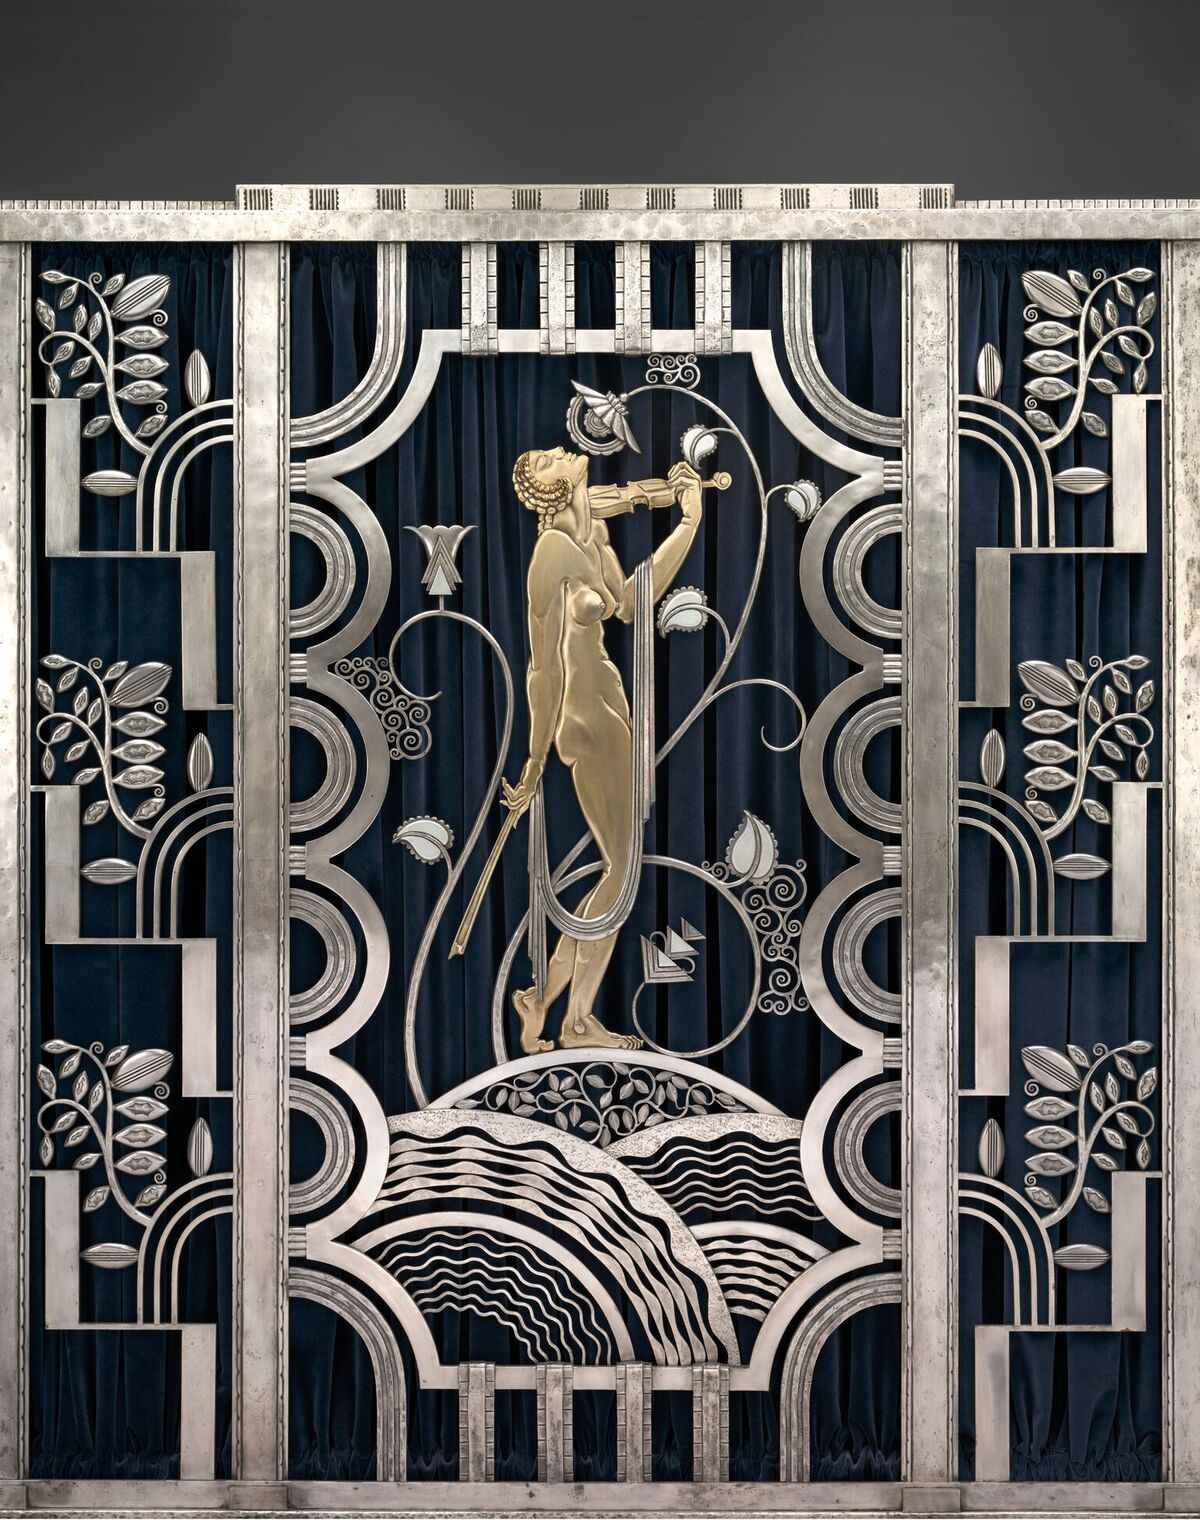 The Cleveland Museum Of Art Presents The Jazz Age American Style In The 1920s Cleveland Museum Of Art